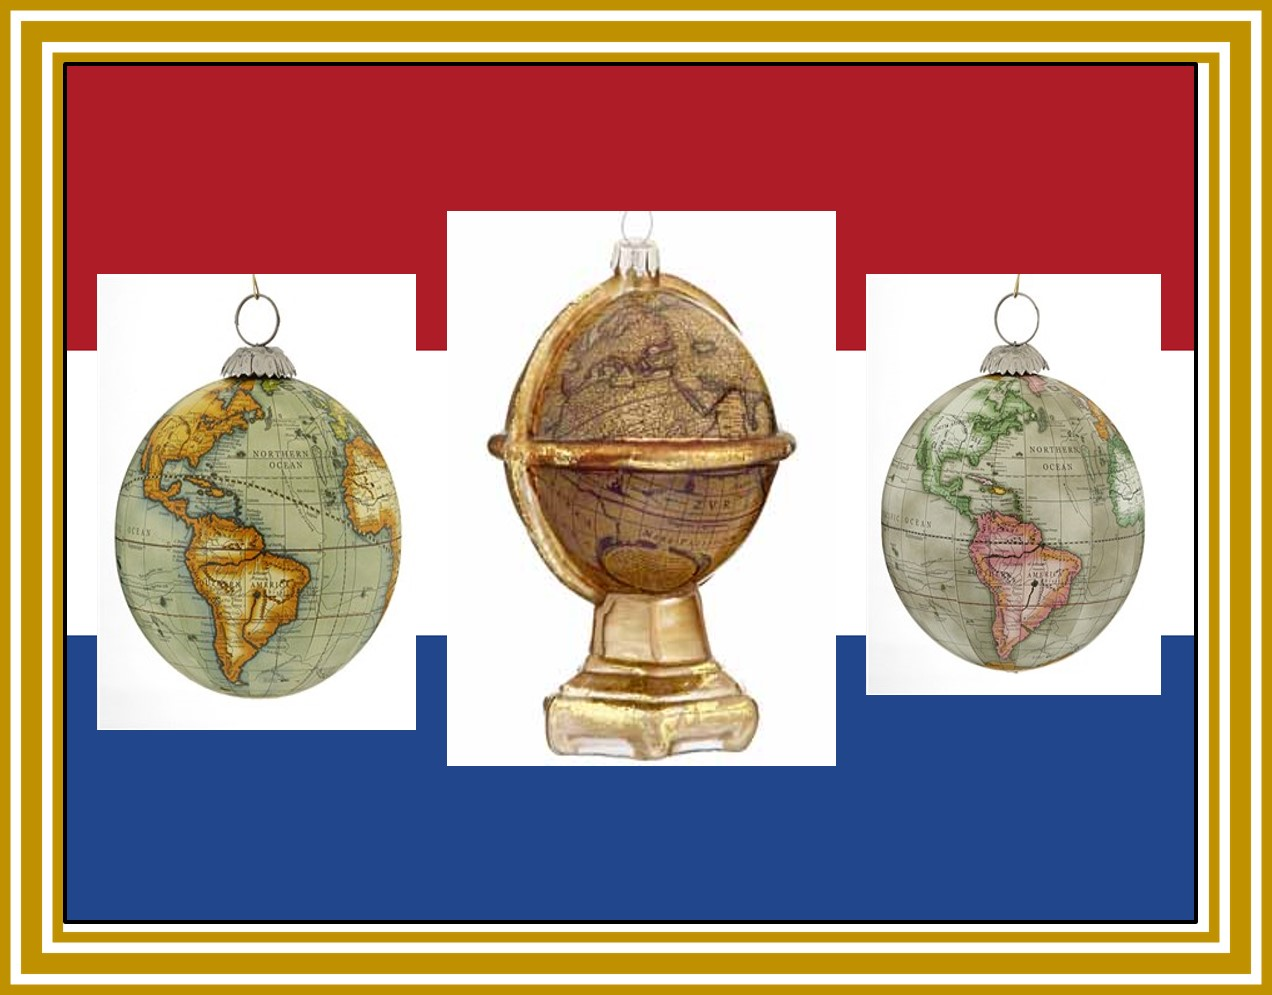 Ornaments of authentic globes and maps for people who love to travel. | OrnamentShop.com